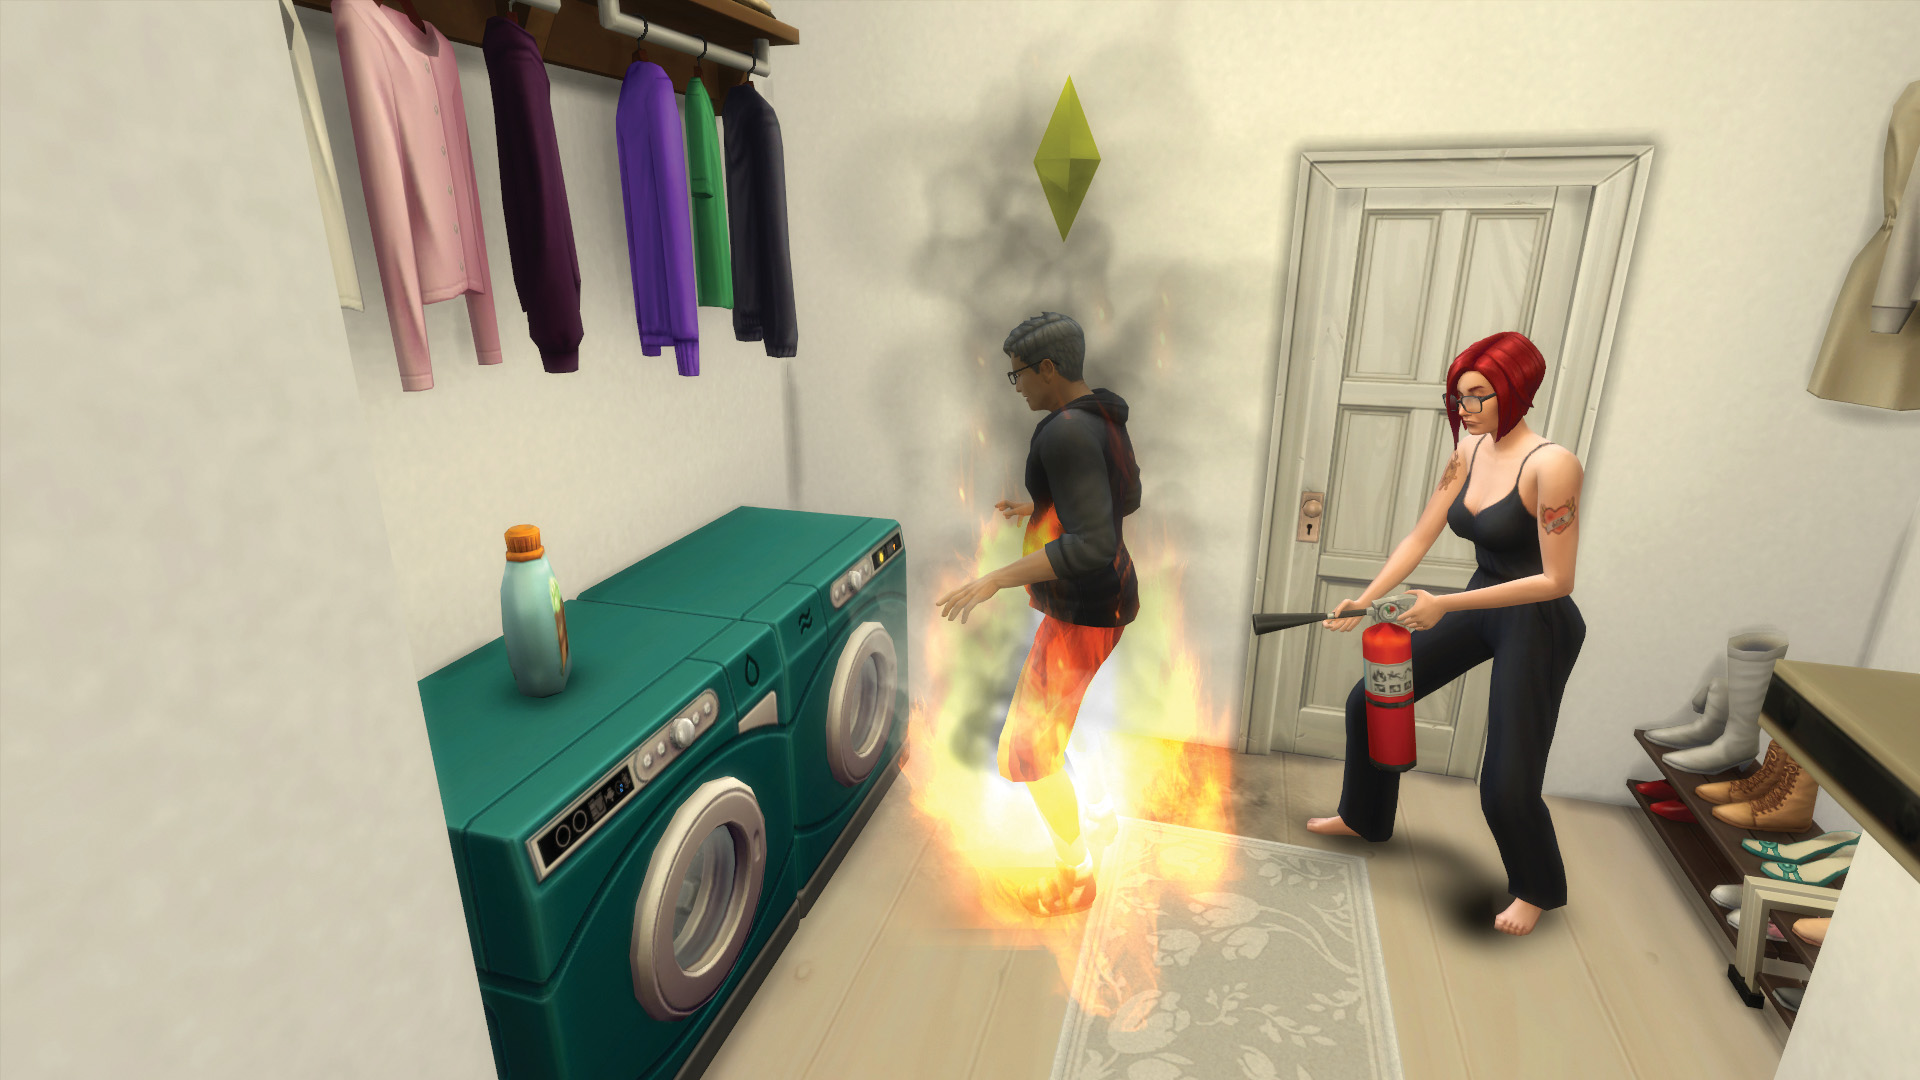 Laundry was the best and worst thing to happen to The Sims